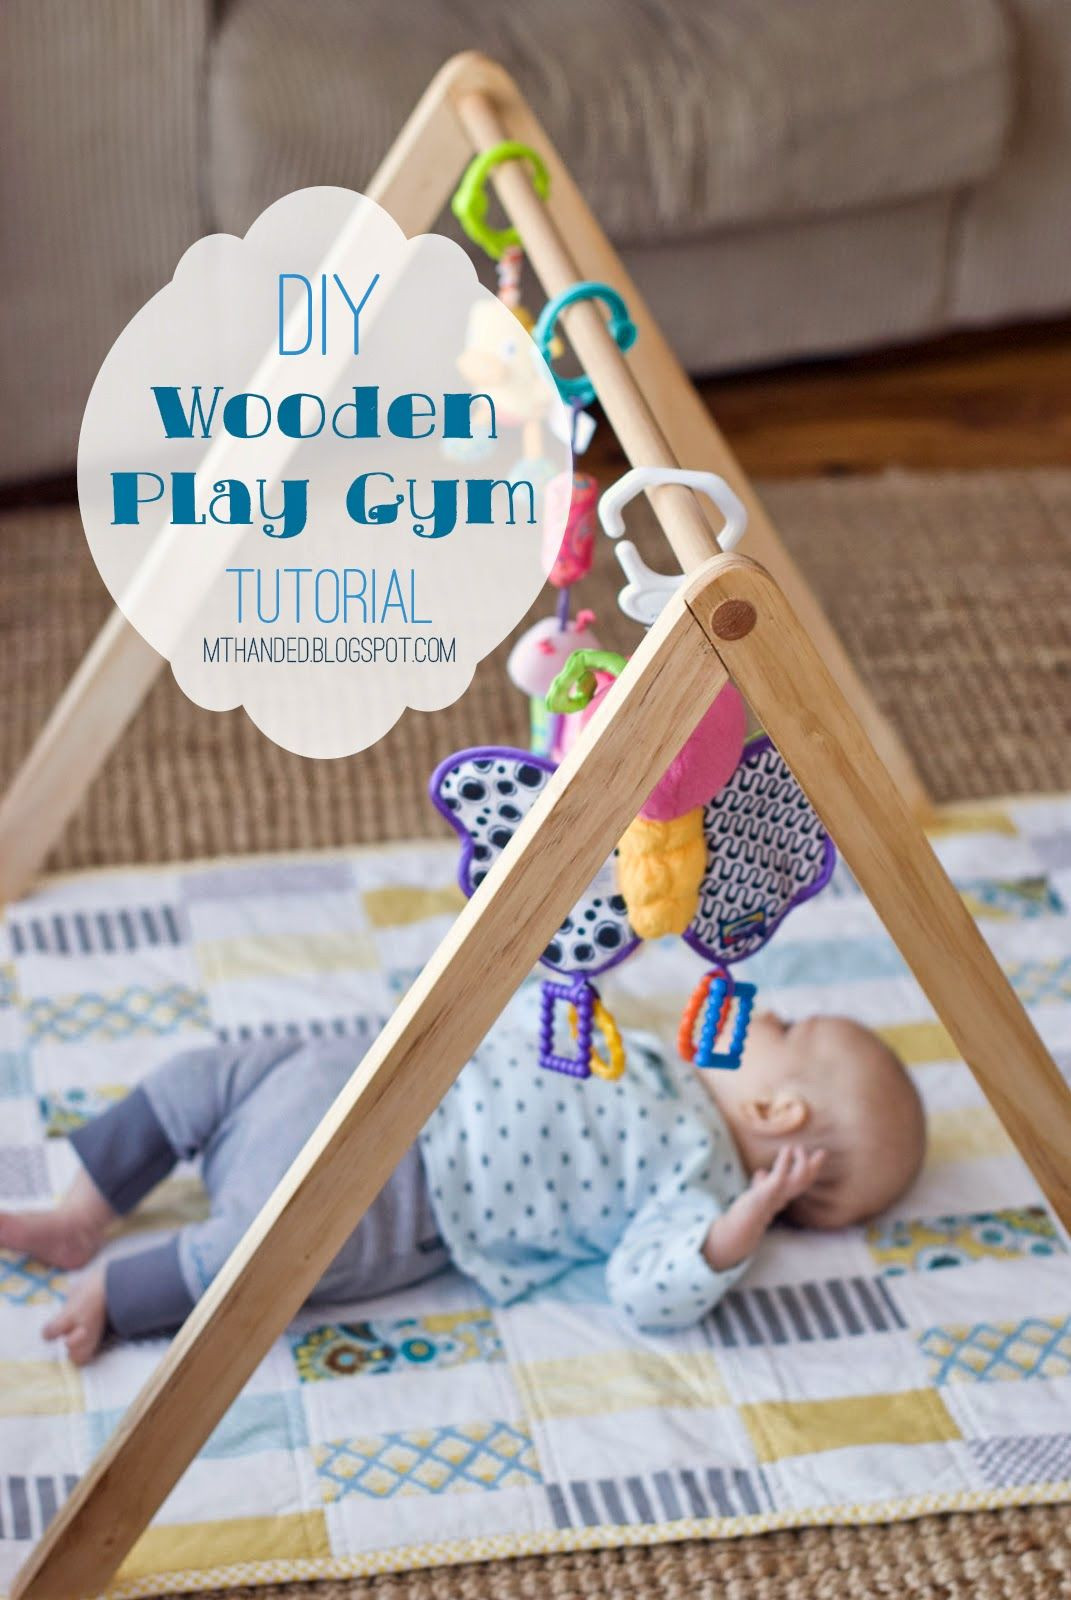 Best ideas about Babies Crafts Ideas . Save or Pin The Best DIY Projects to Craft For Your Newborn Now.